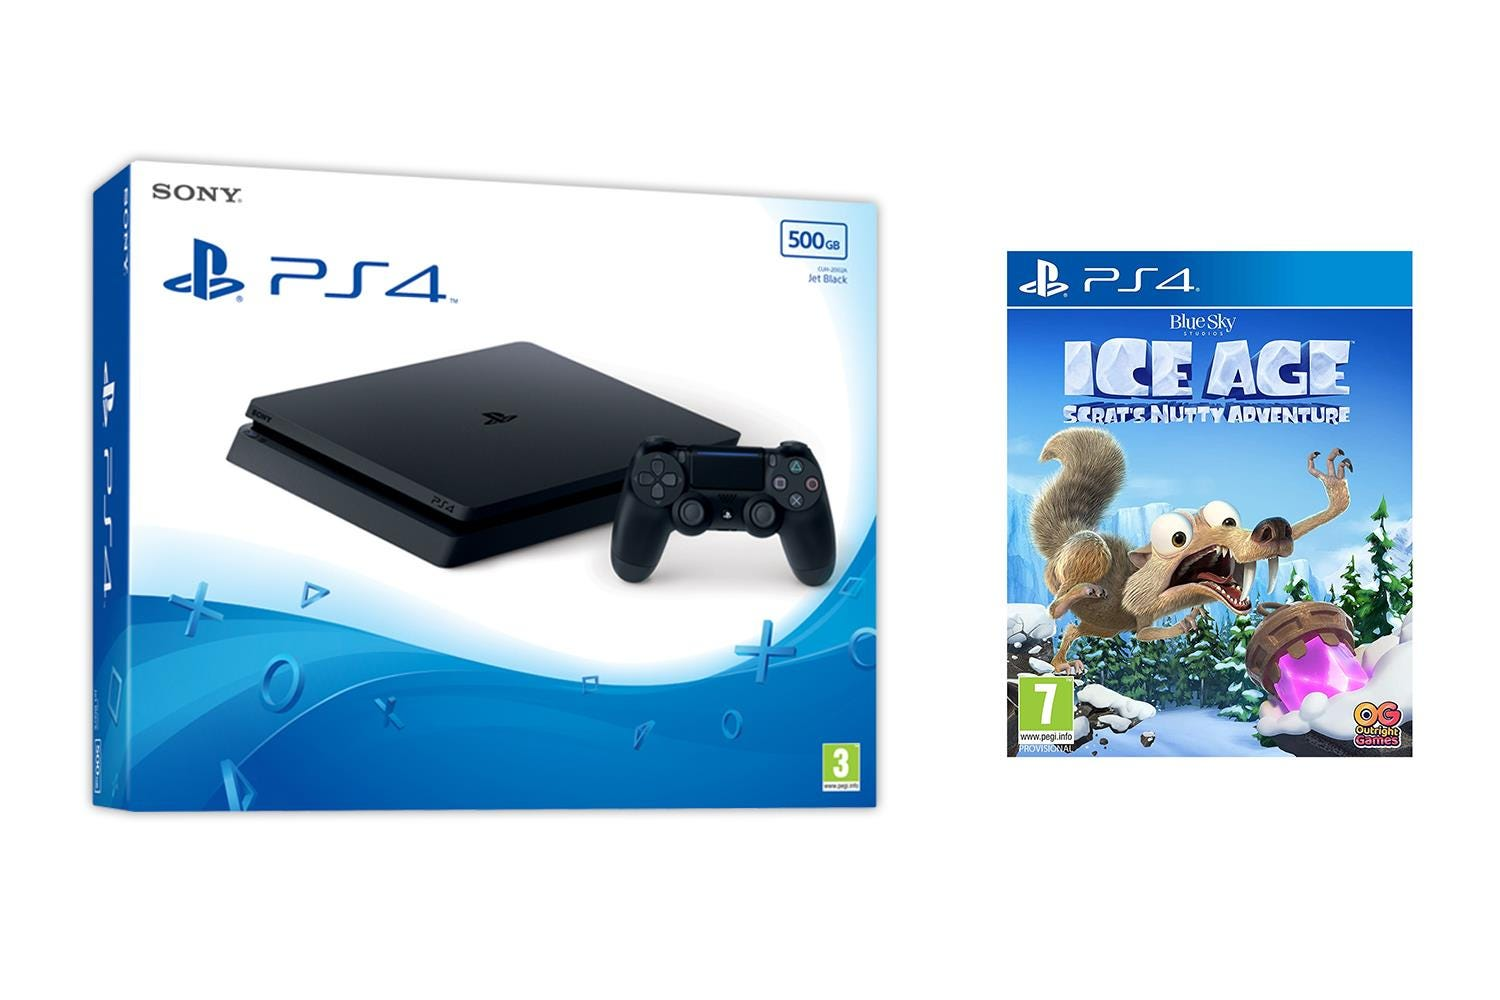 Sony PlayStation 4 500GB Jet Black Console with Ice Age: Scrat's Nutty Adventure